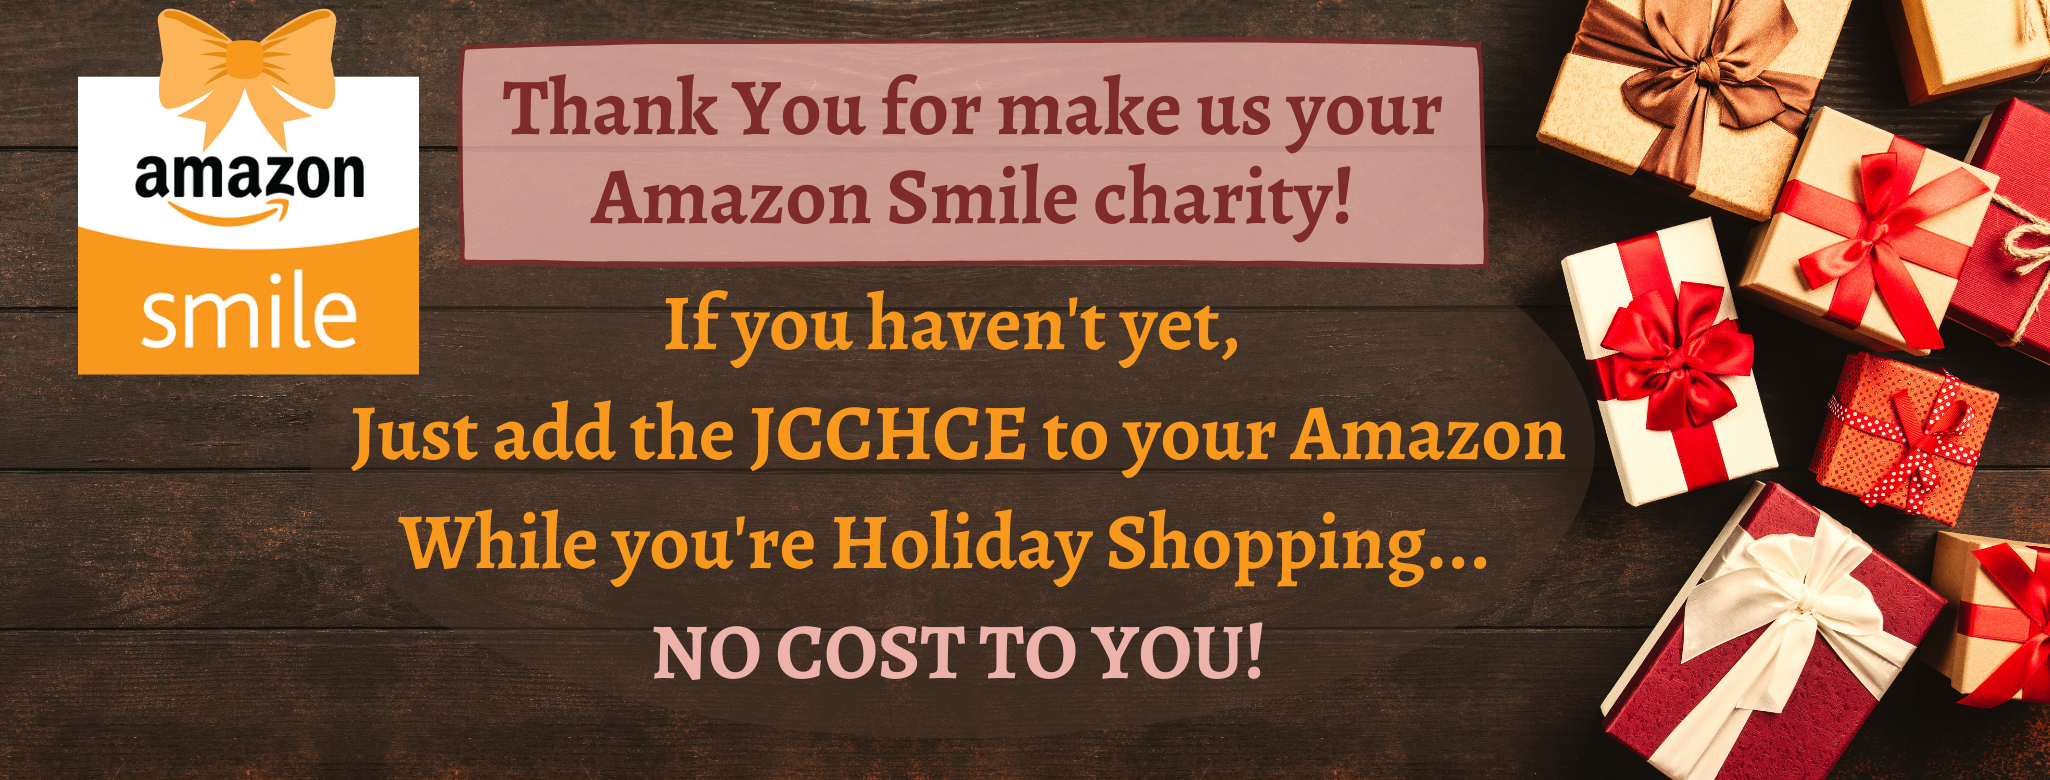 Make sure we are your Amazon Smile charity! (2)